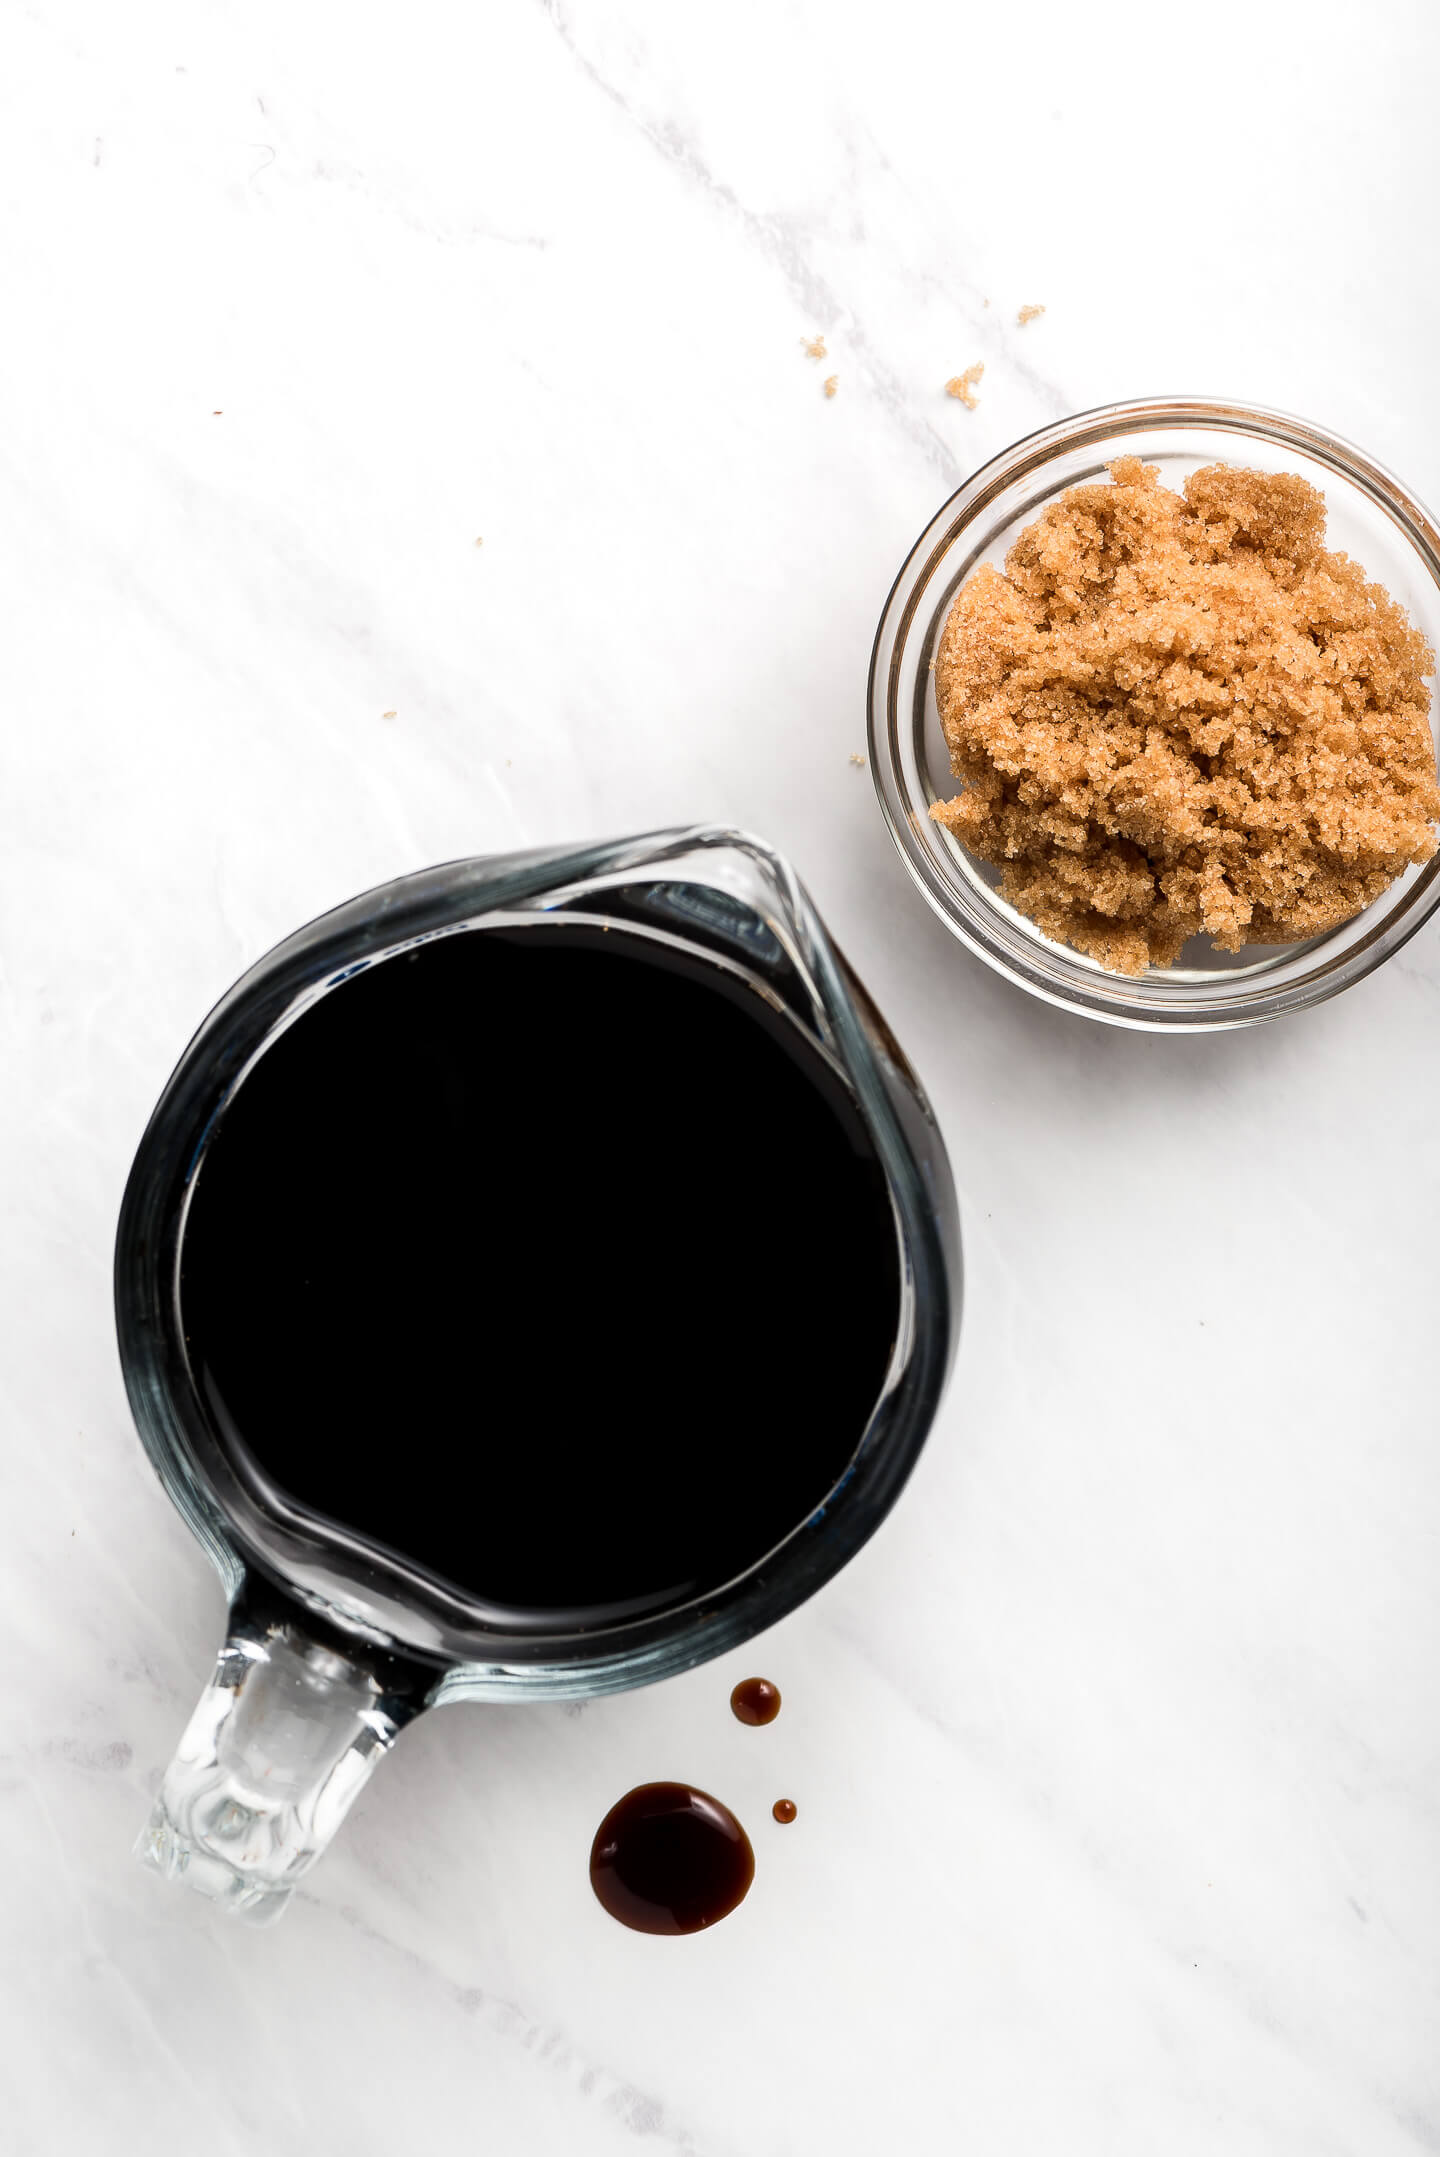 A glass measuring cup of balsamic vinegar and a small dish of brown sugar.